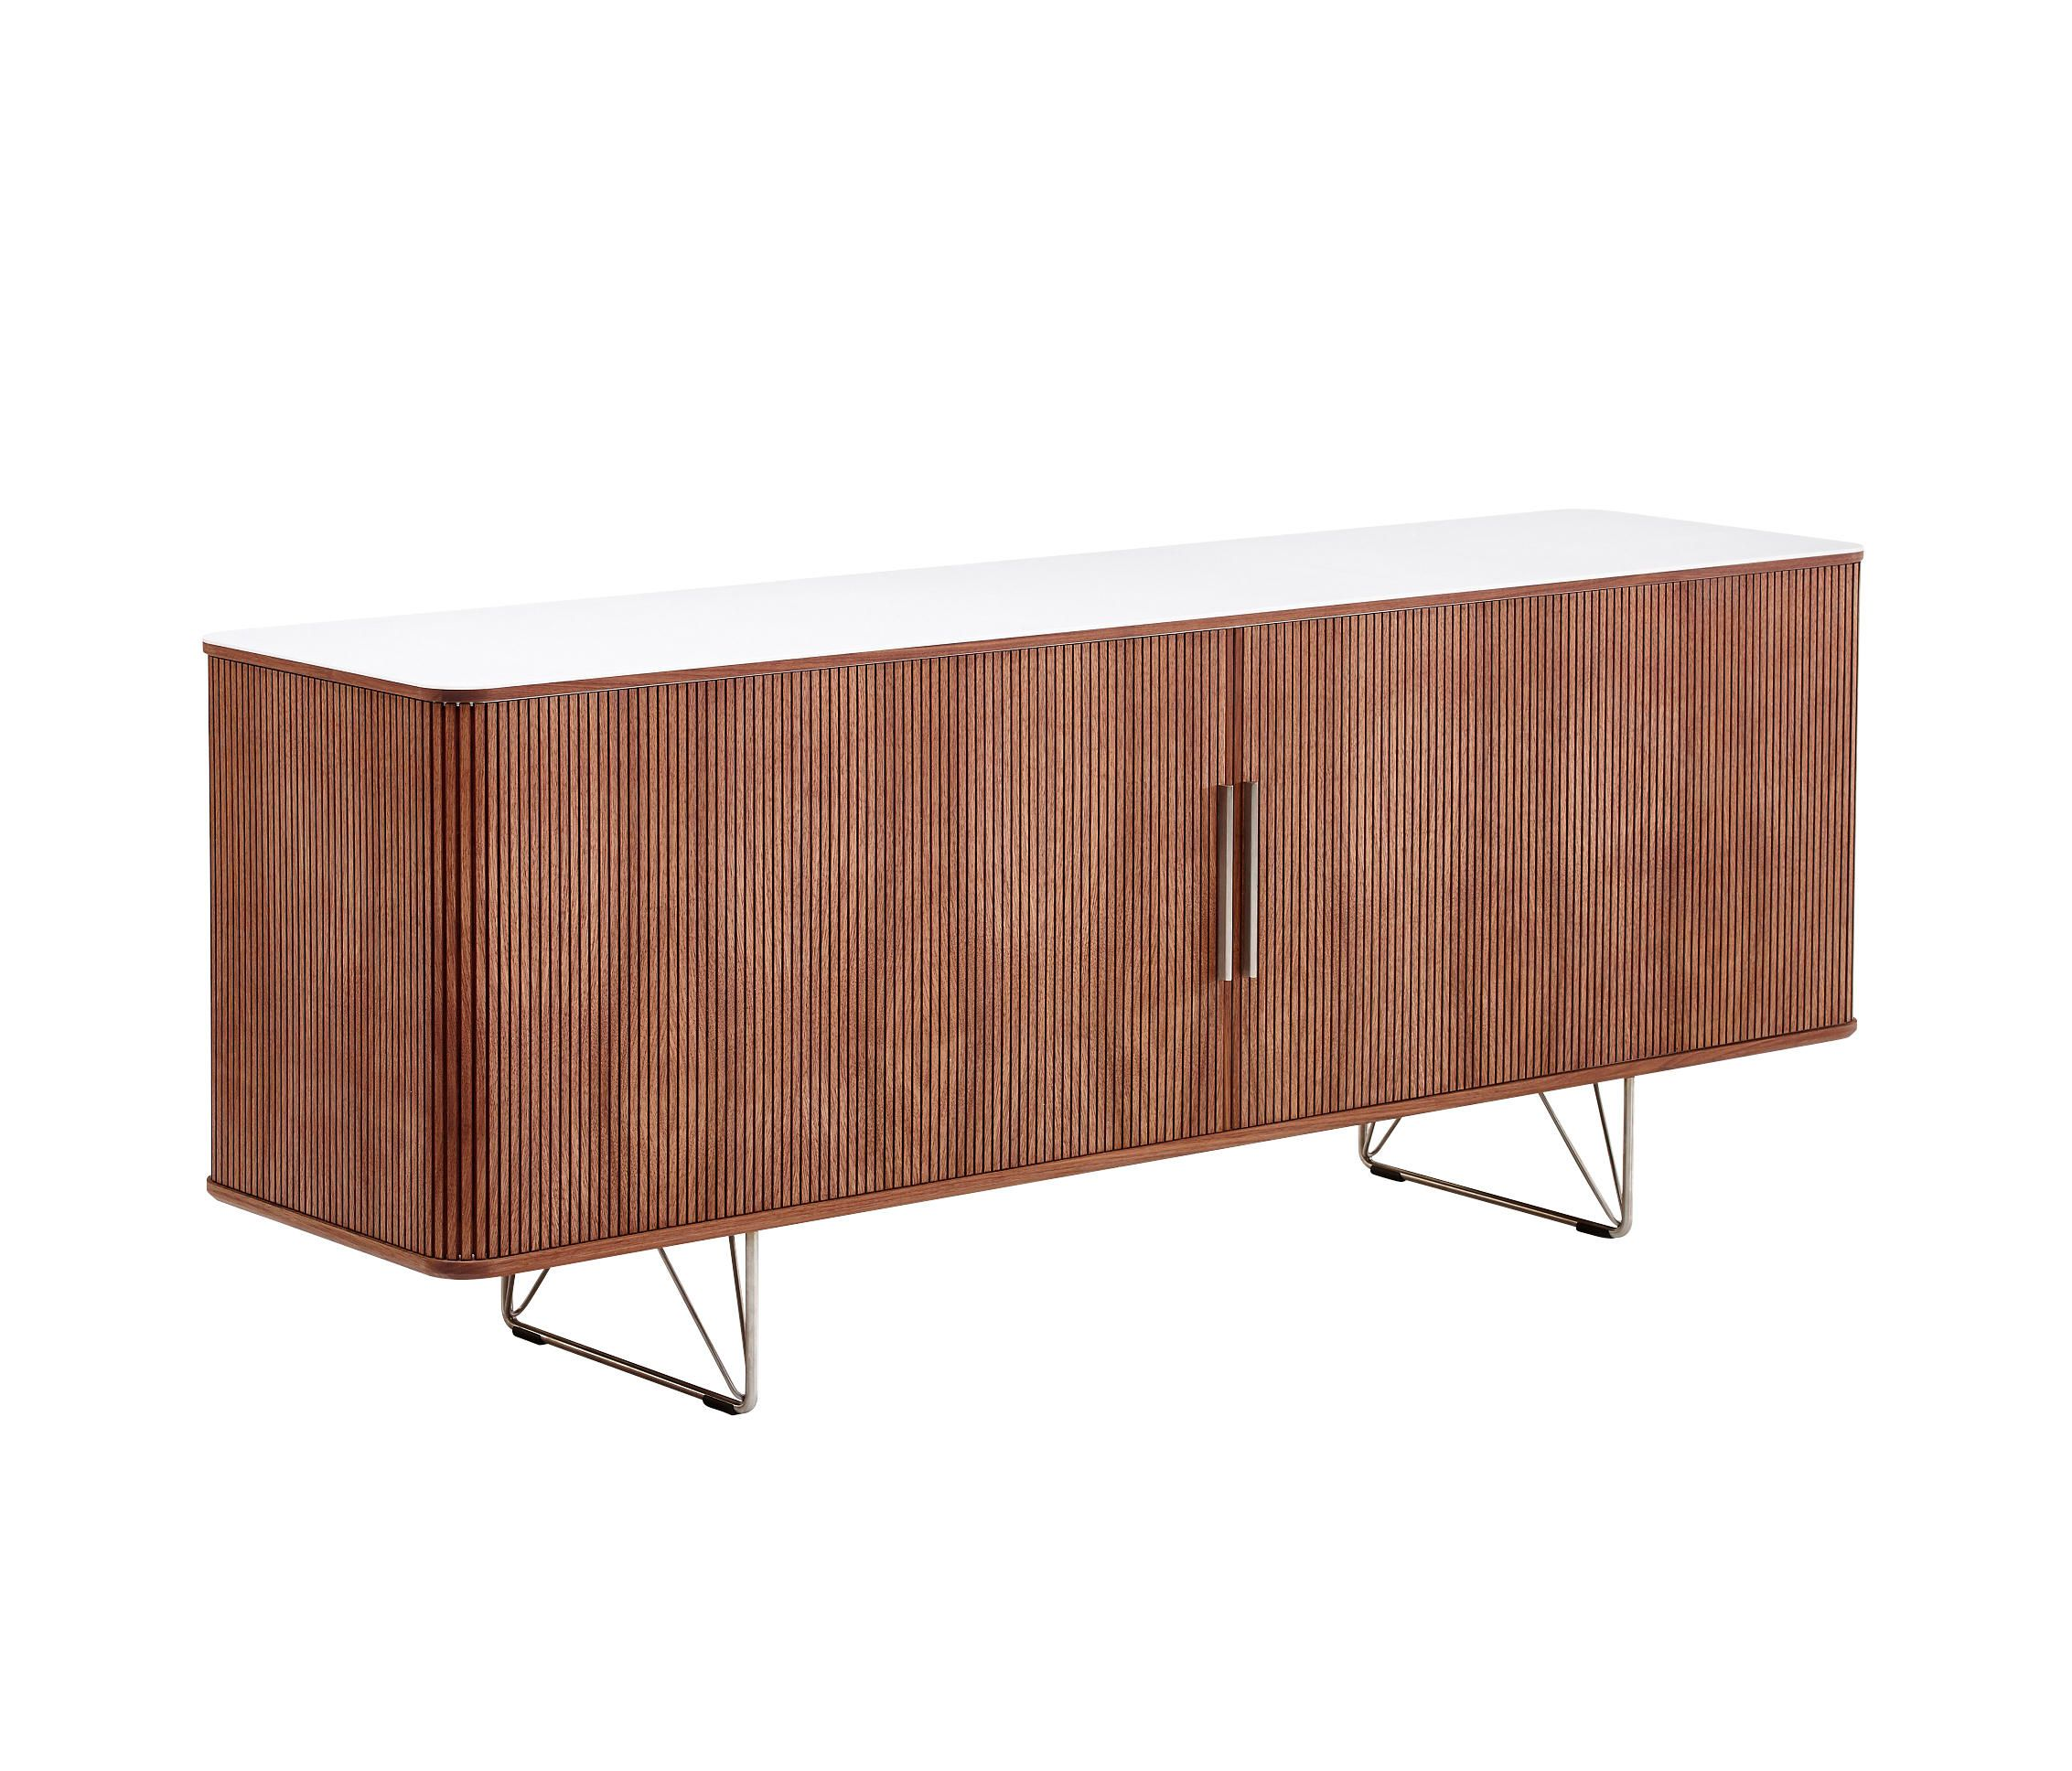 AK 2730 SIDEBOARD - designer Sideboards from Naver ✓ all information ✓ high-resolution images ✓ CADs ✓ catalogues ✓ contact information ✓ find..